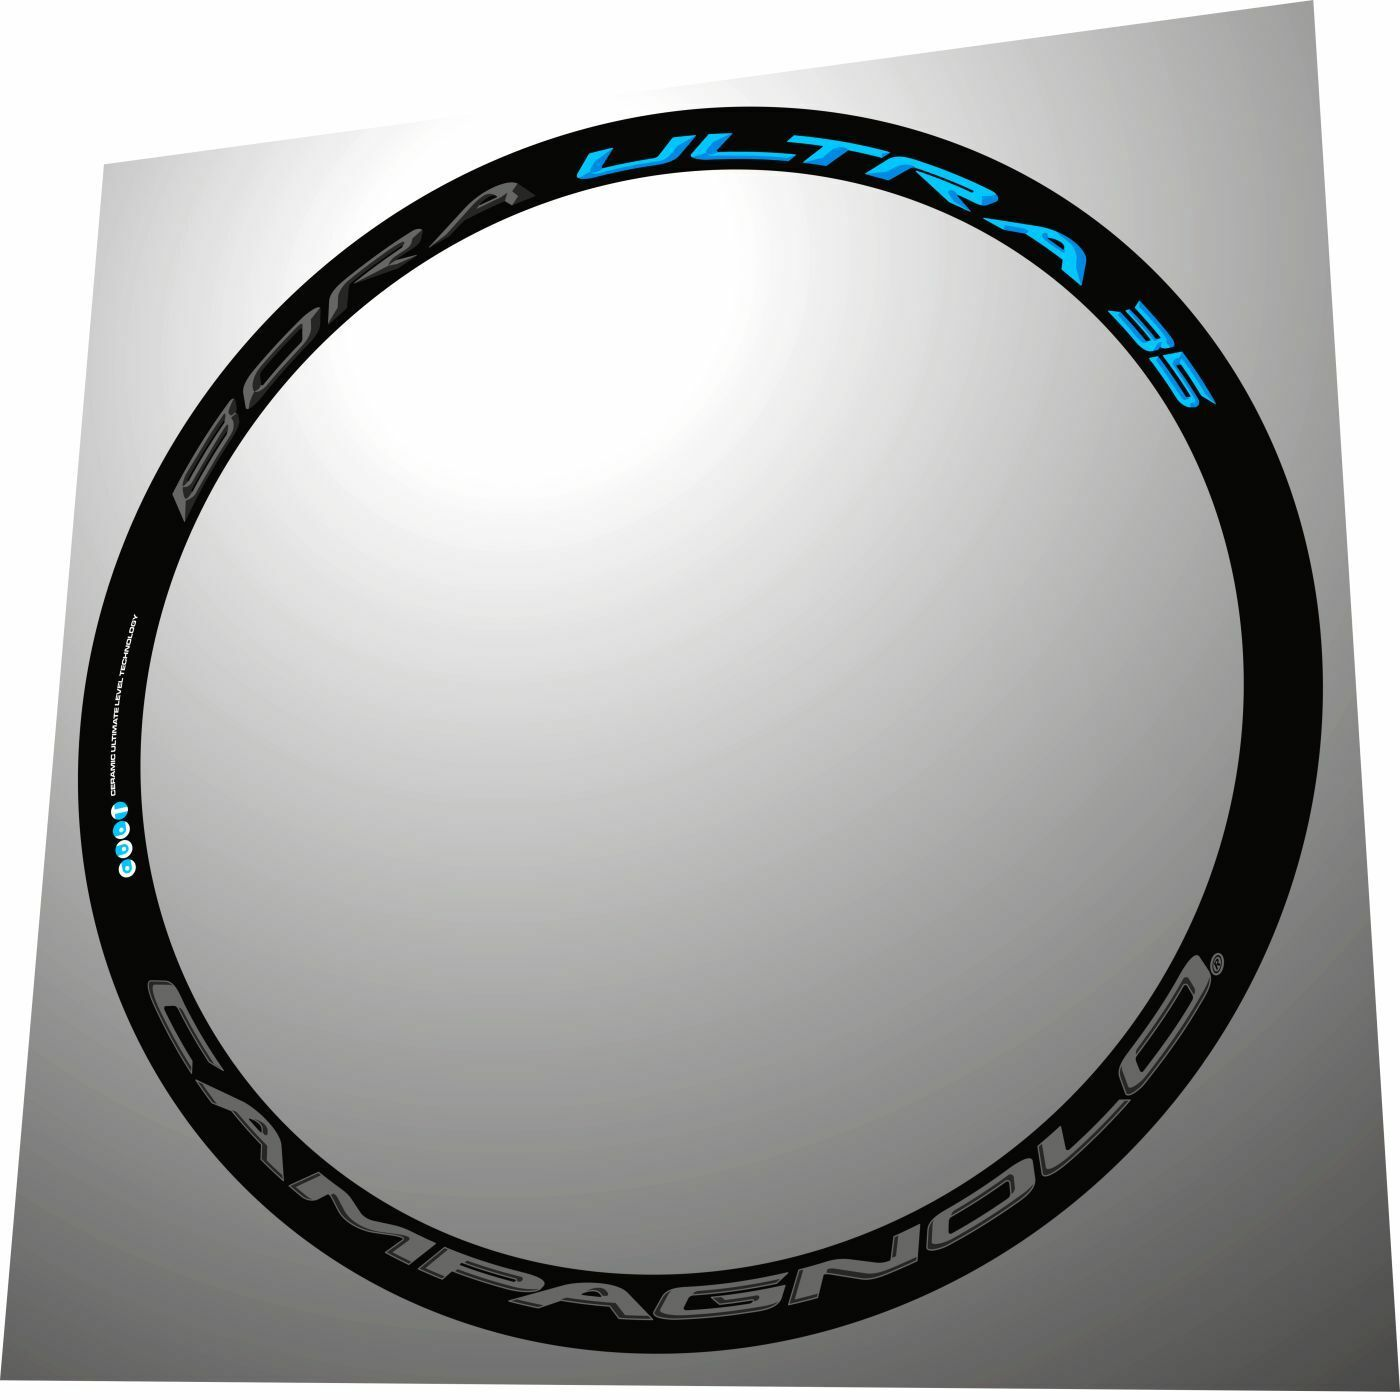 CAMPAGNOLO BORA ULTRA 35 3D DARK & SKY blueeE REPLACEMENT RIM DECAL SET FOR 2 RIMS